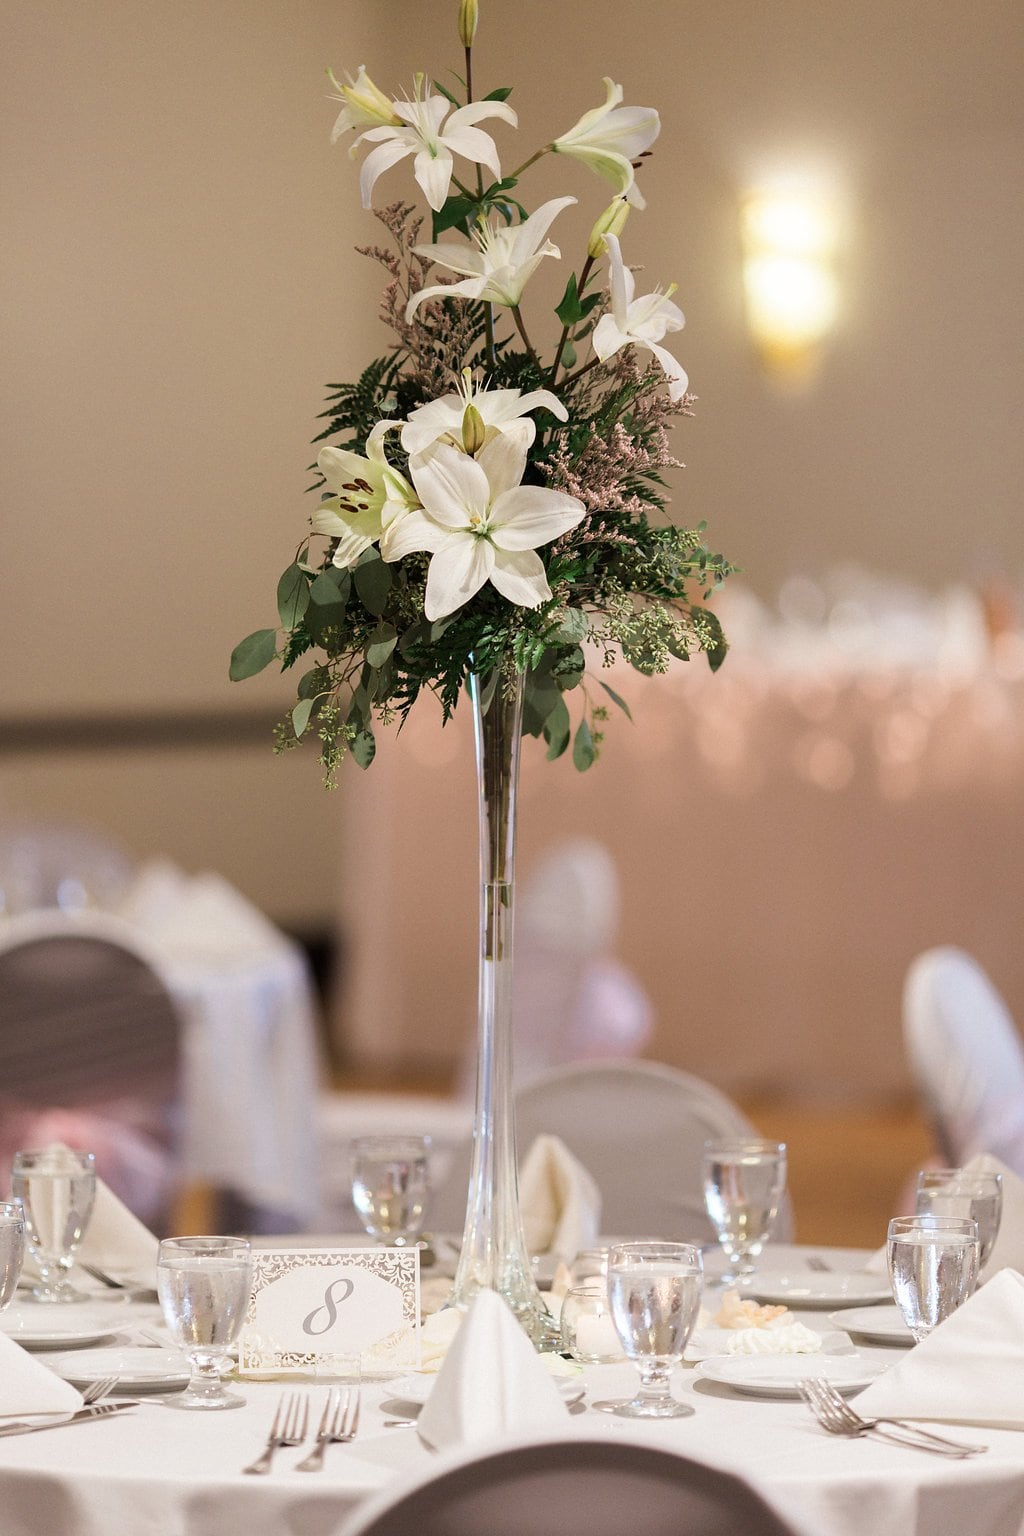 Tall centerpiece with lilies as wedding decor